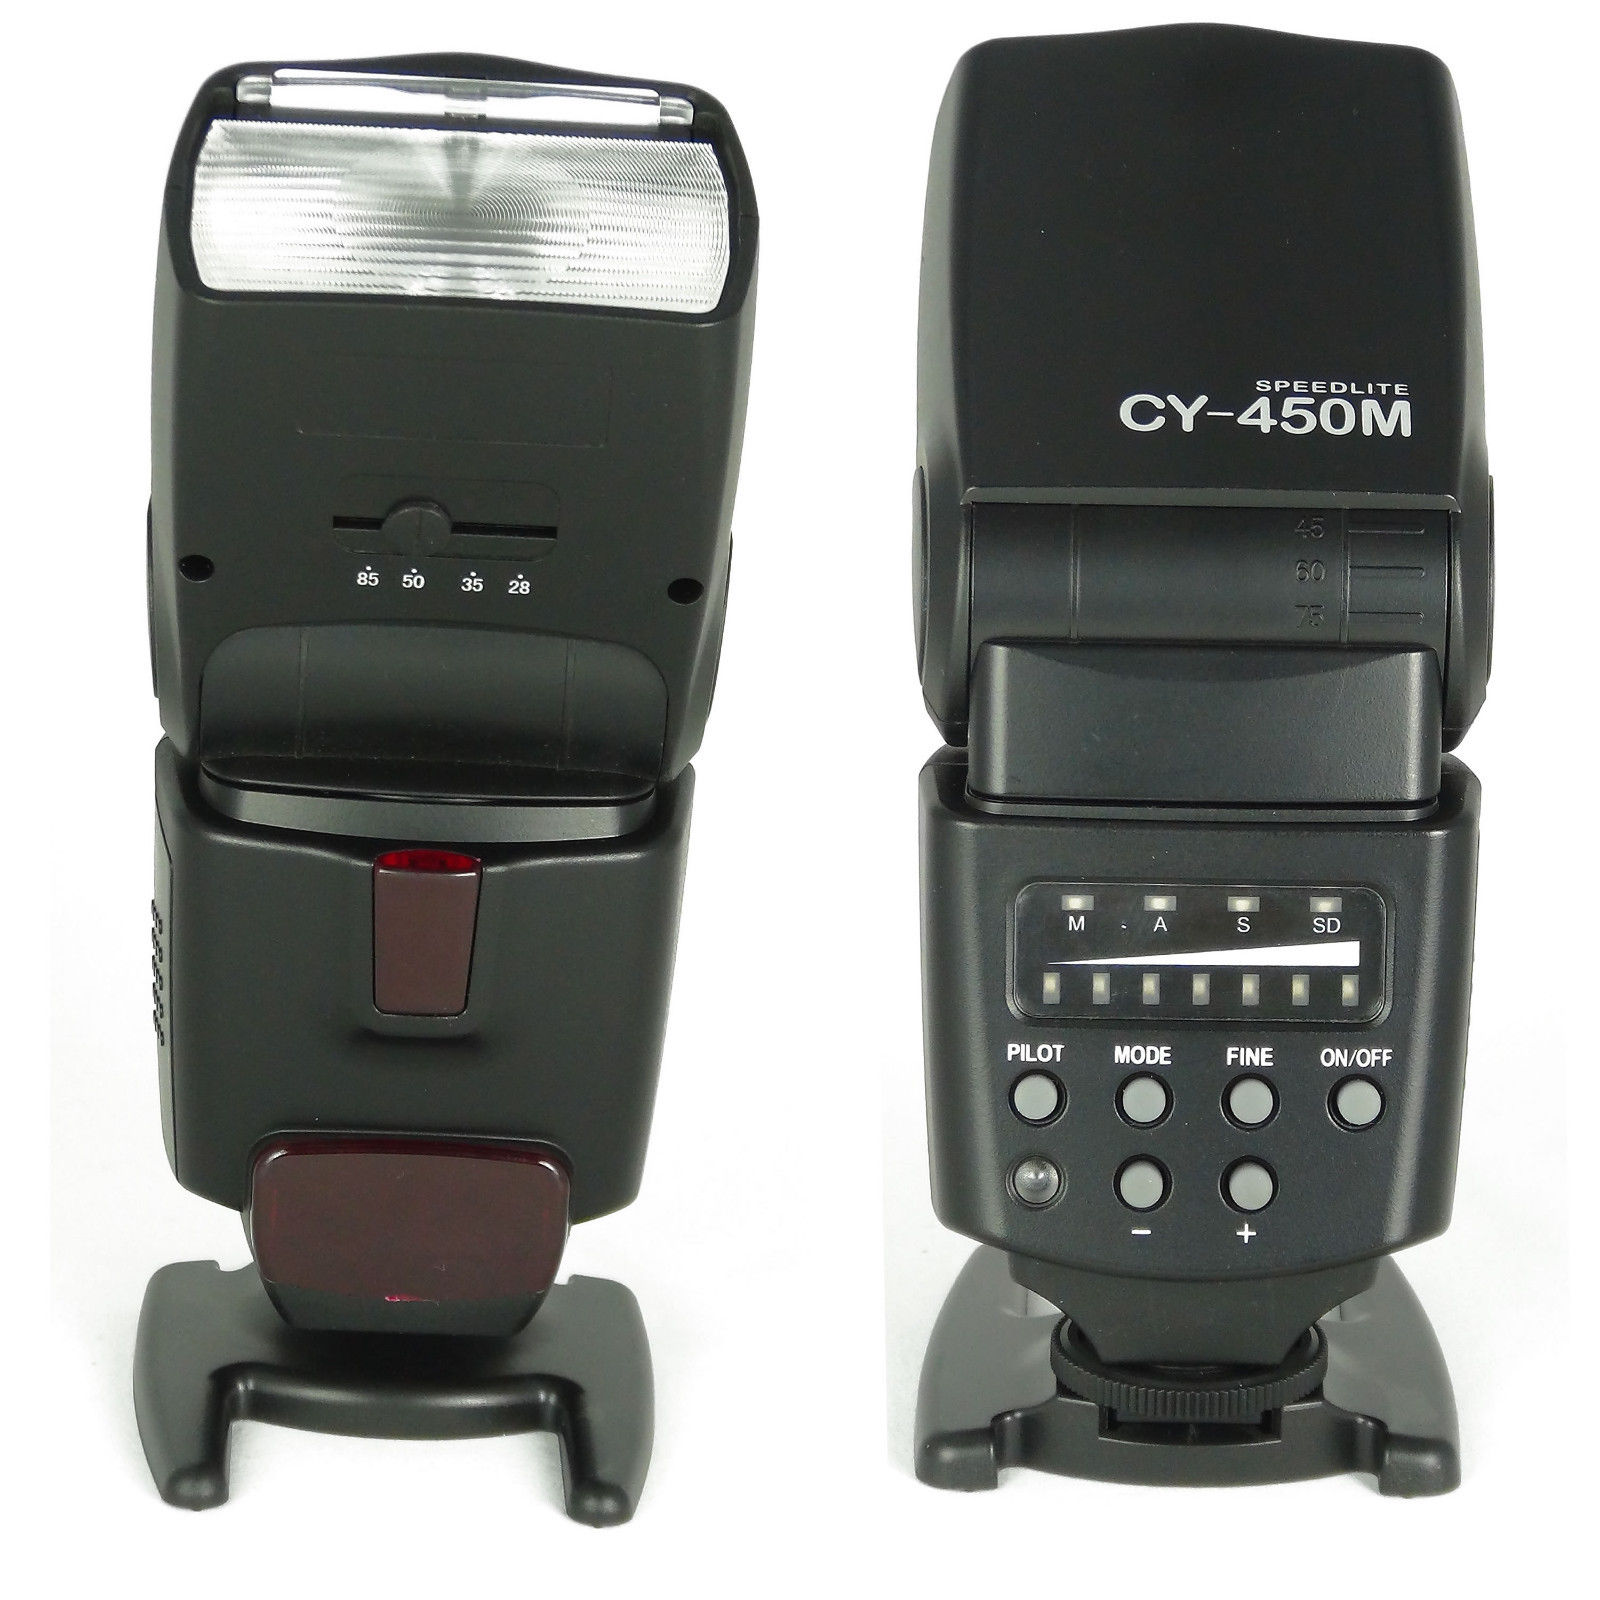 YinYan CY-450M CY450M Studio Flash Speedlite light flashgun for canon 60d 600d 7d 5dii 6d 5diii 550d 50d 700d nikon camera